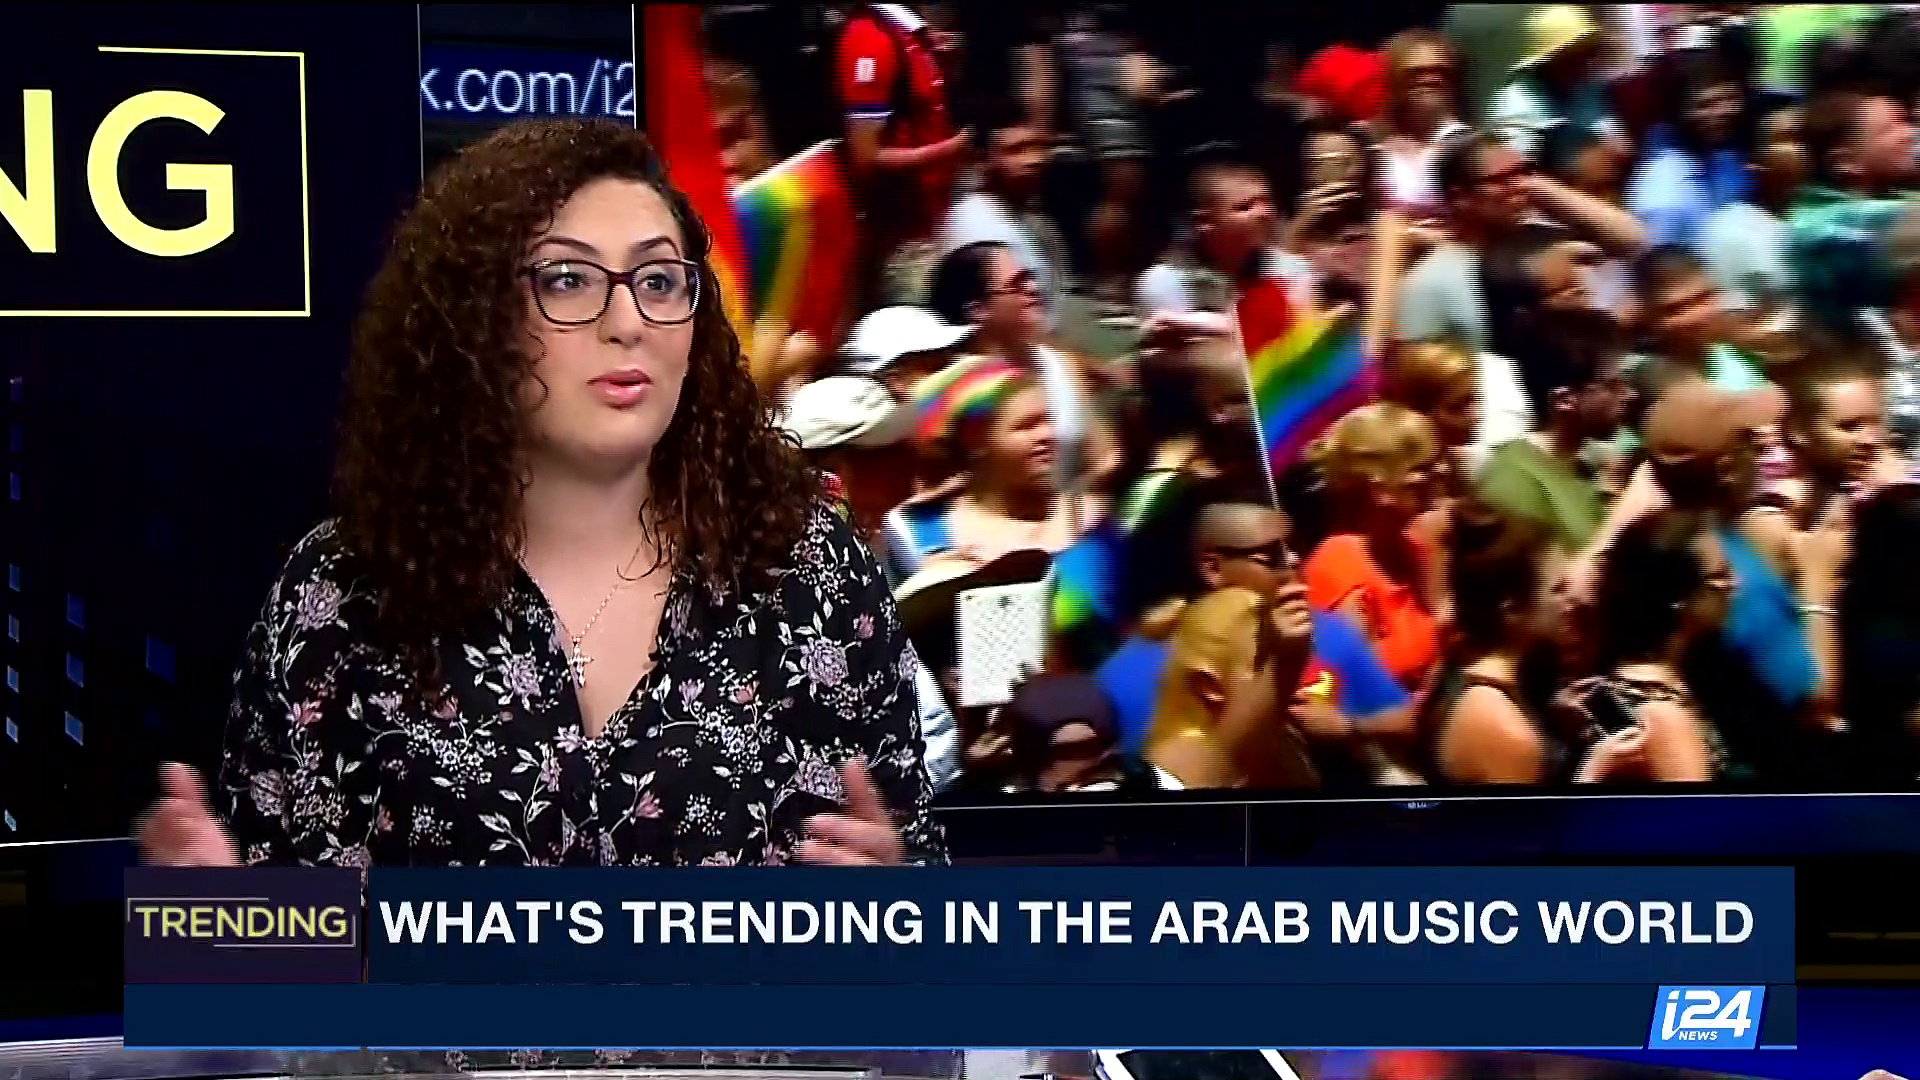 TRENDING |  What's trending in the Arab music world | Friday, May 19th 2017